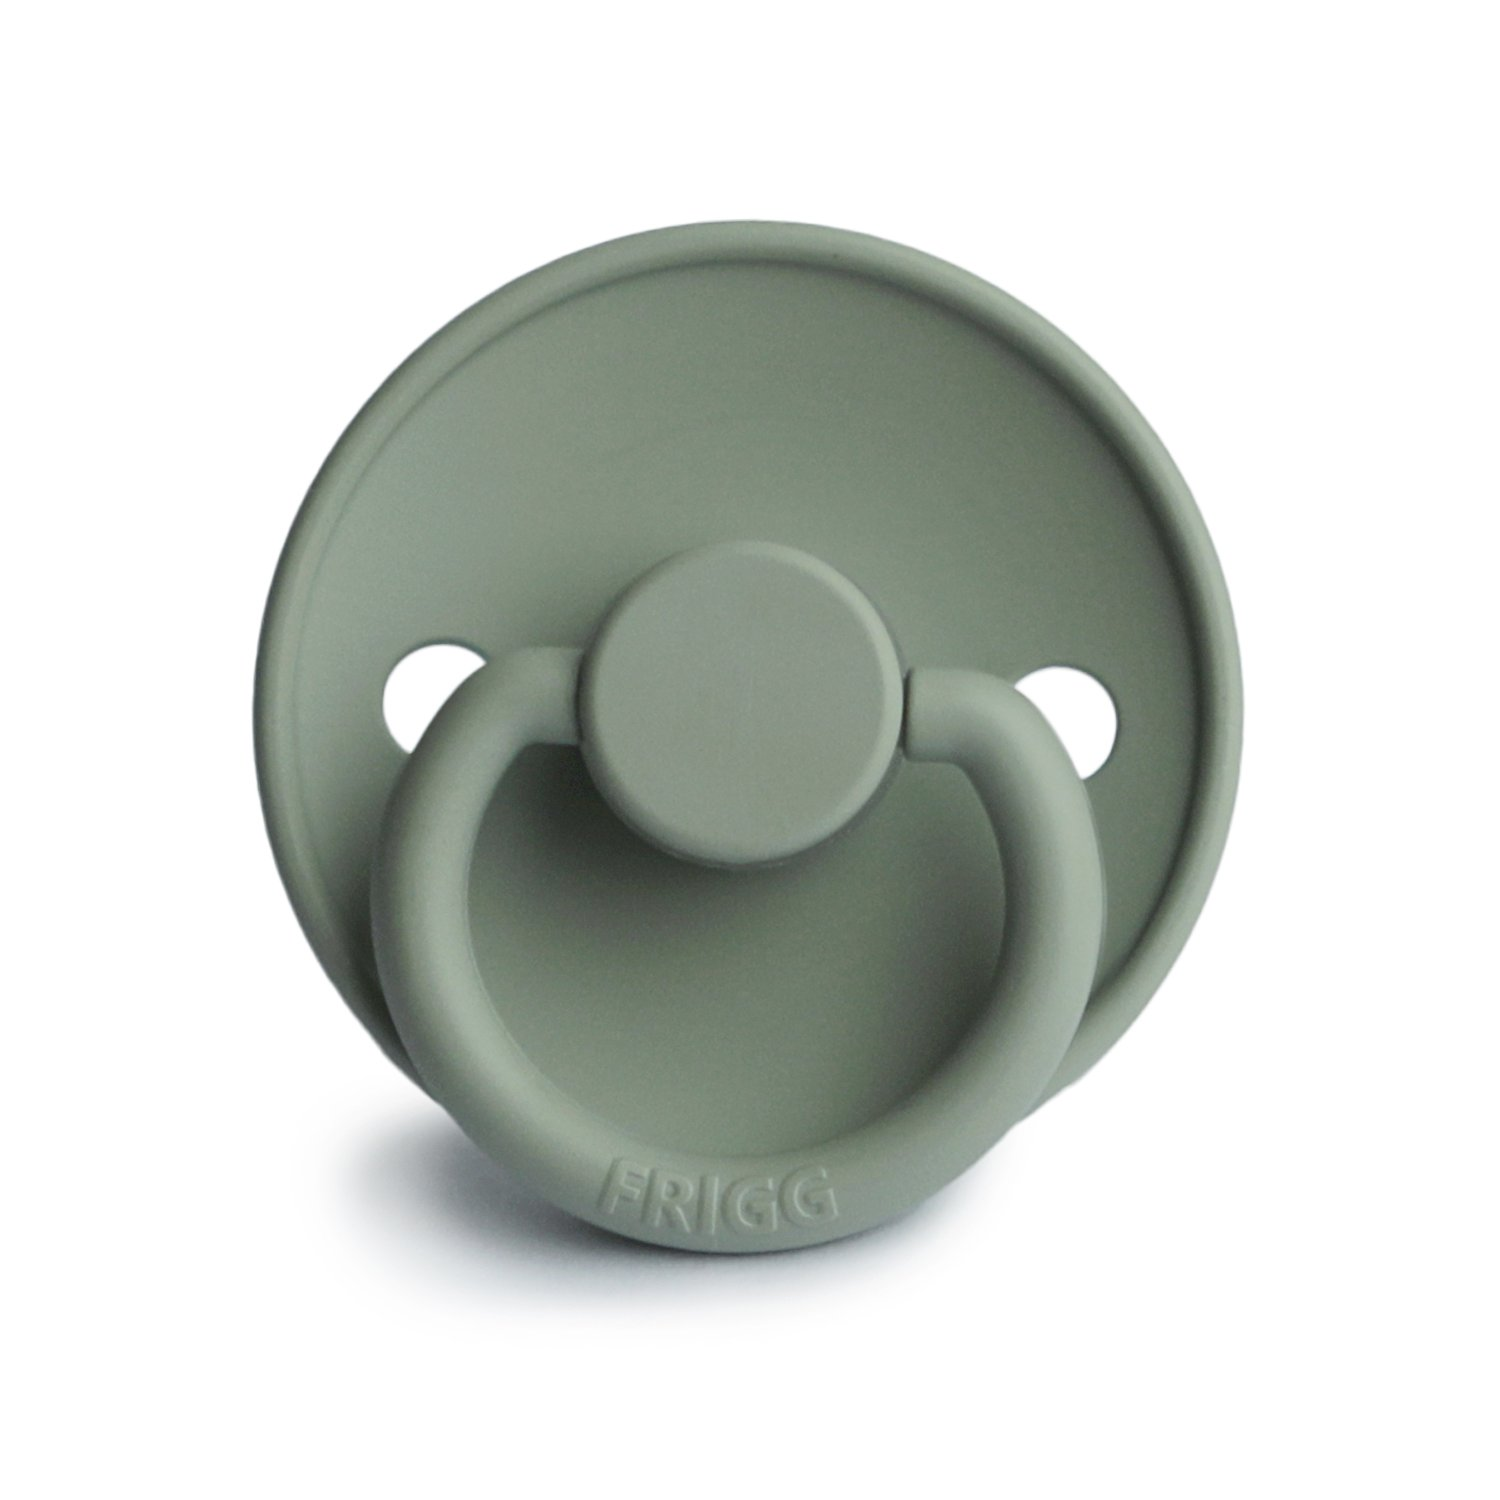 FRIGG Classic silicone - Lily Pad